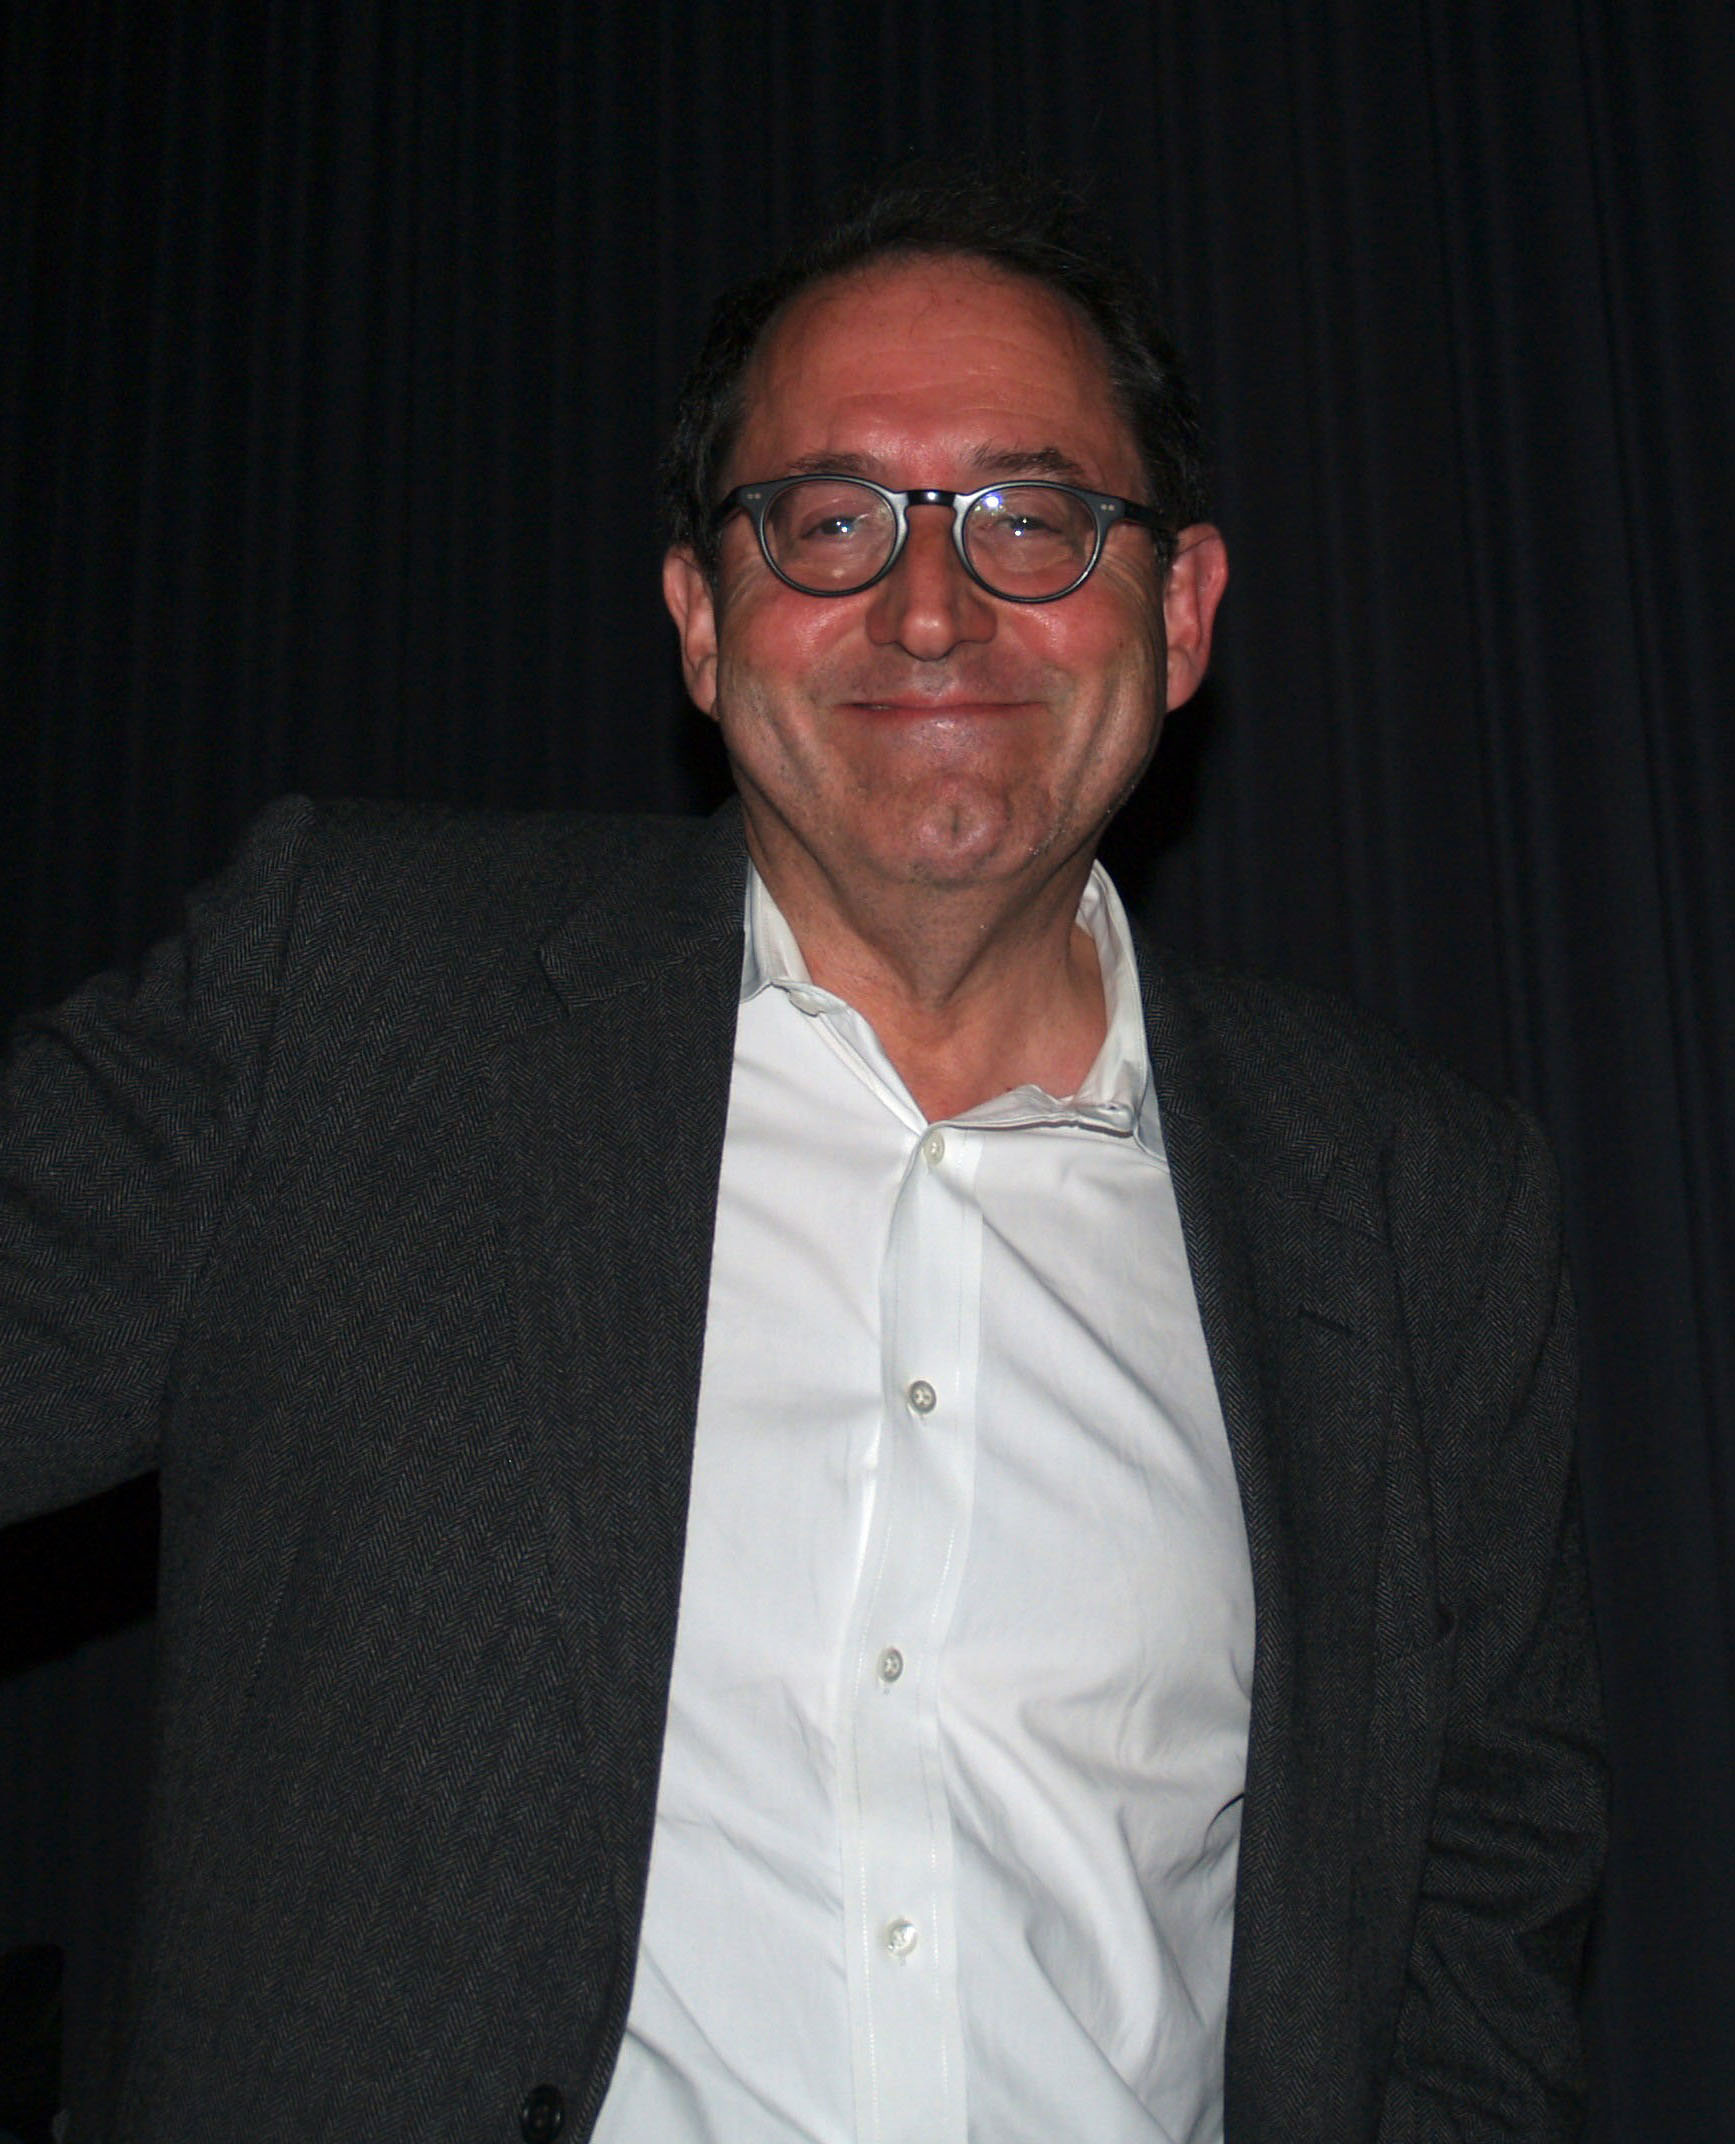 Co-founder and co-president Michael Barker